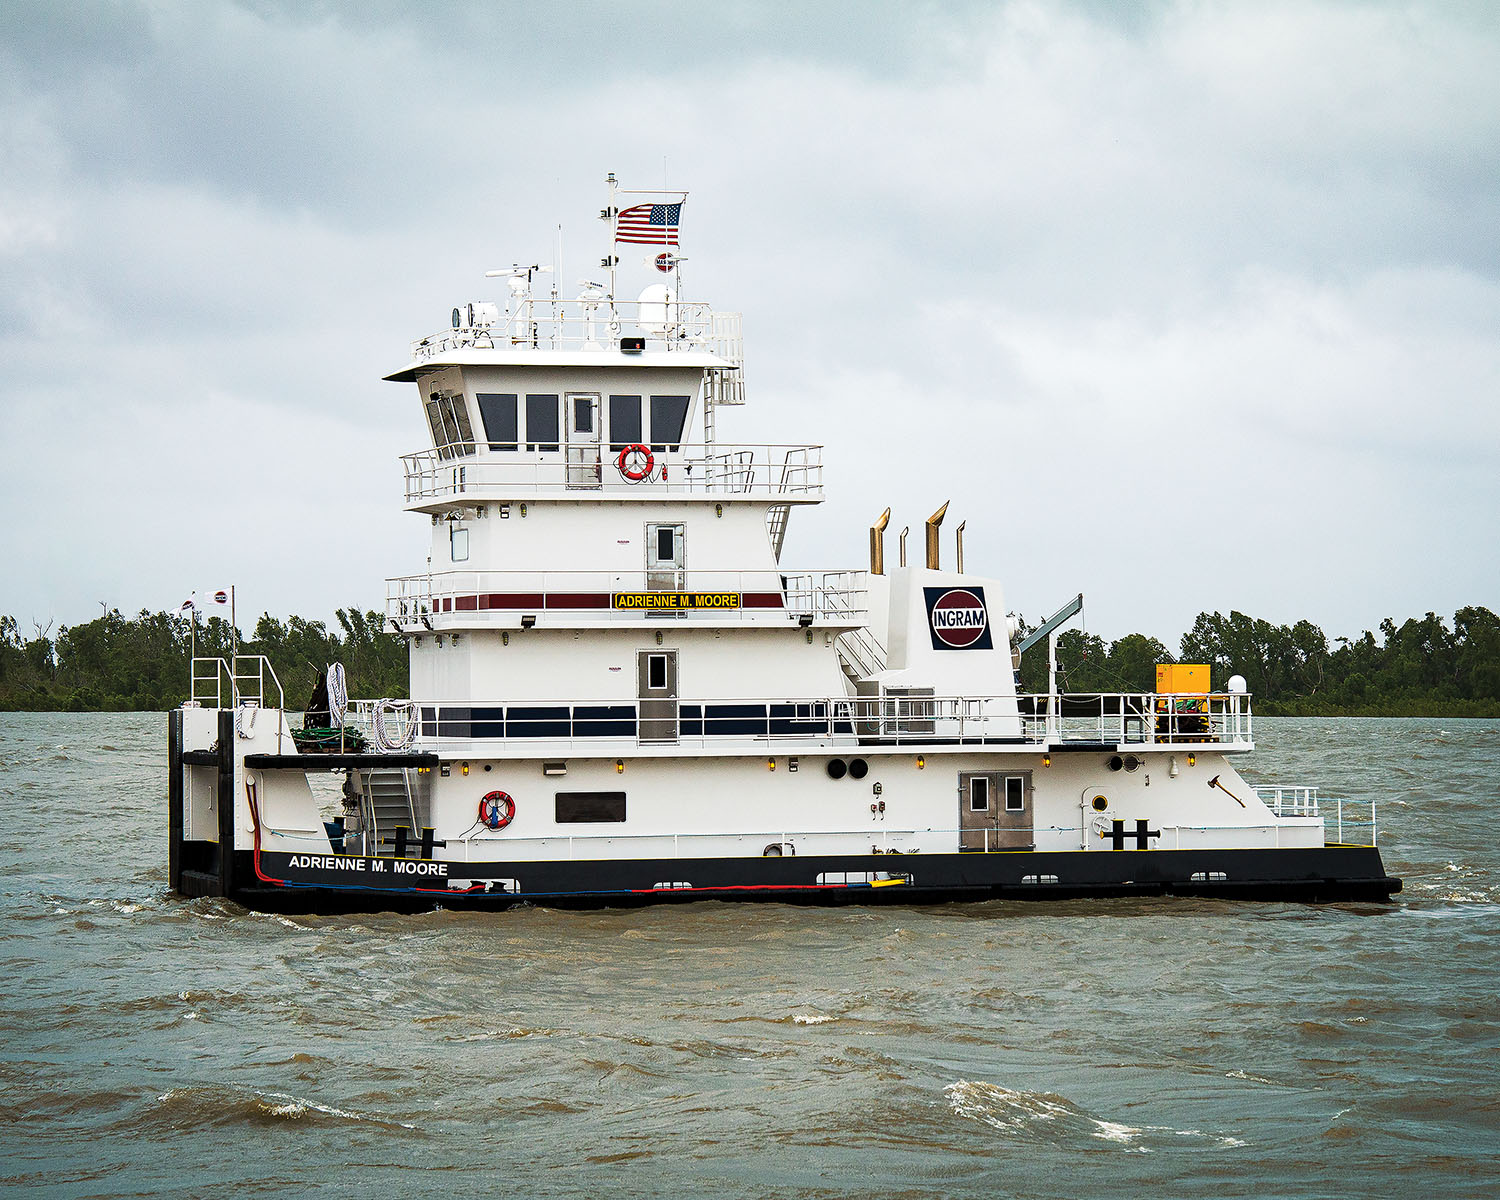 The mv. Adrienne M. Moore is the first of 10 towboats being built by Main Iron Works for Ingram Barge Company.